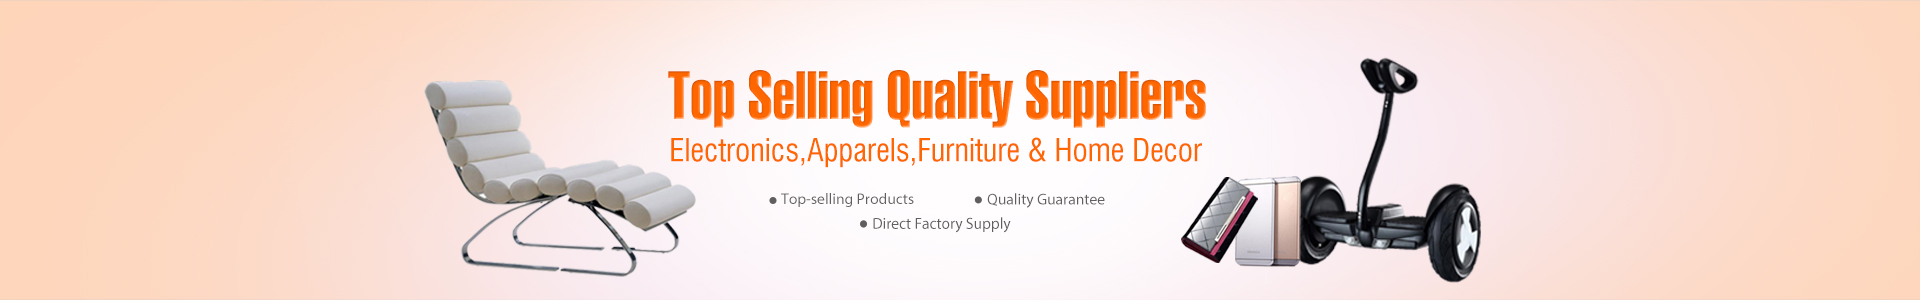 top selling quality suppliers